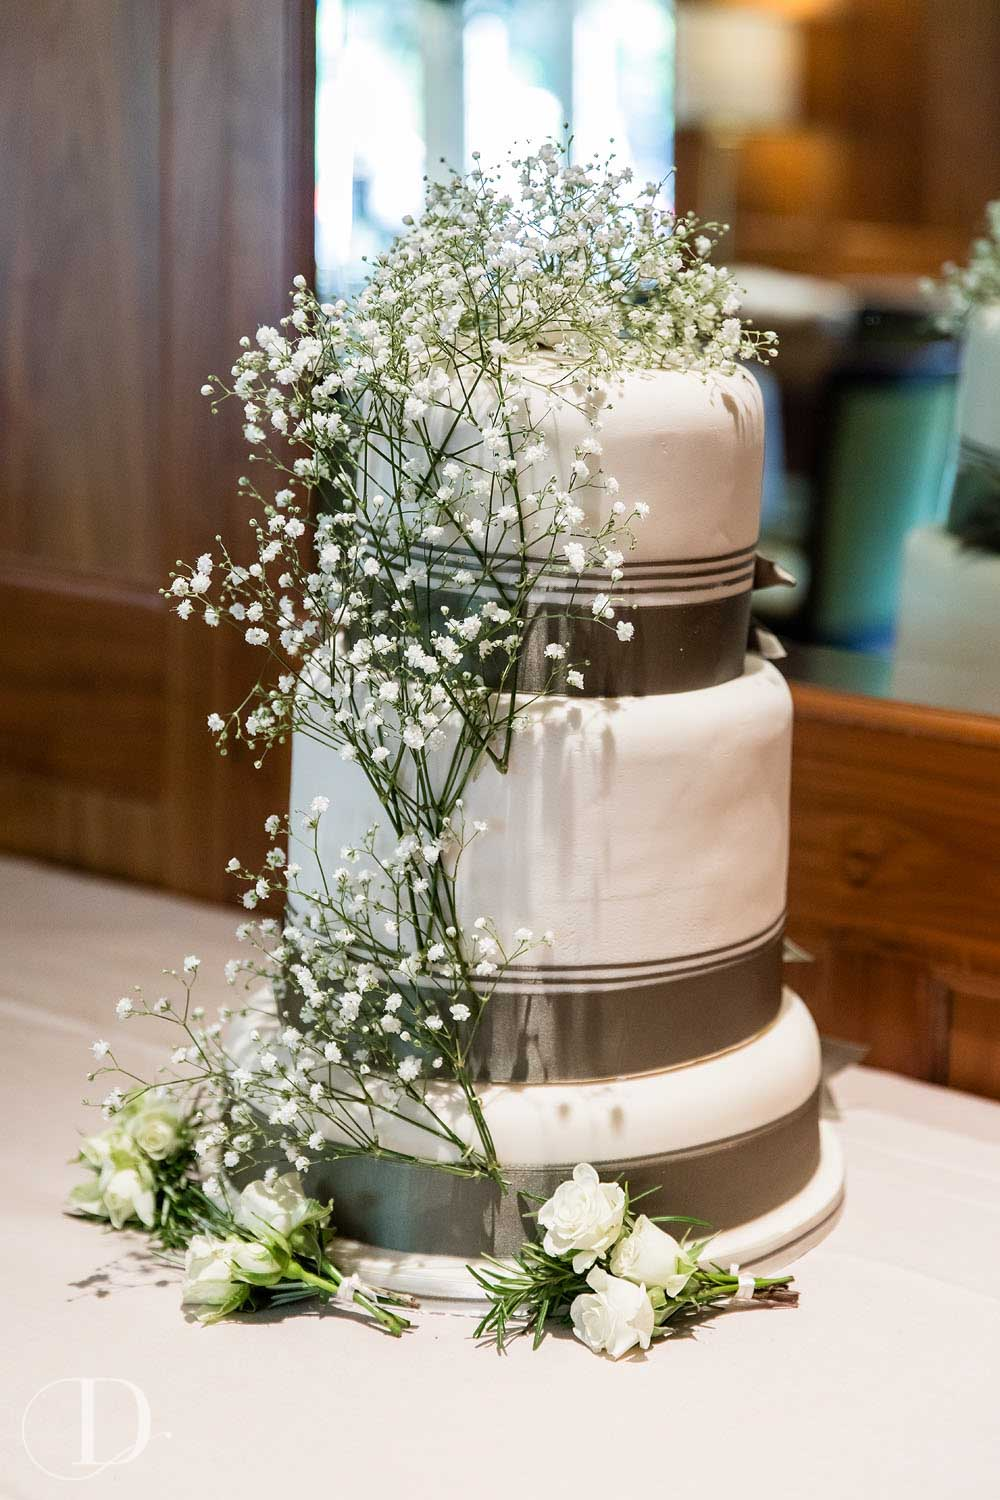 Le Manoir aux Quat'Saisons wedding cake